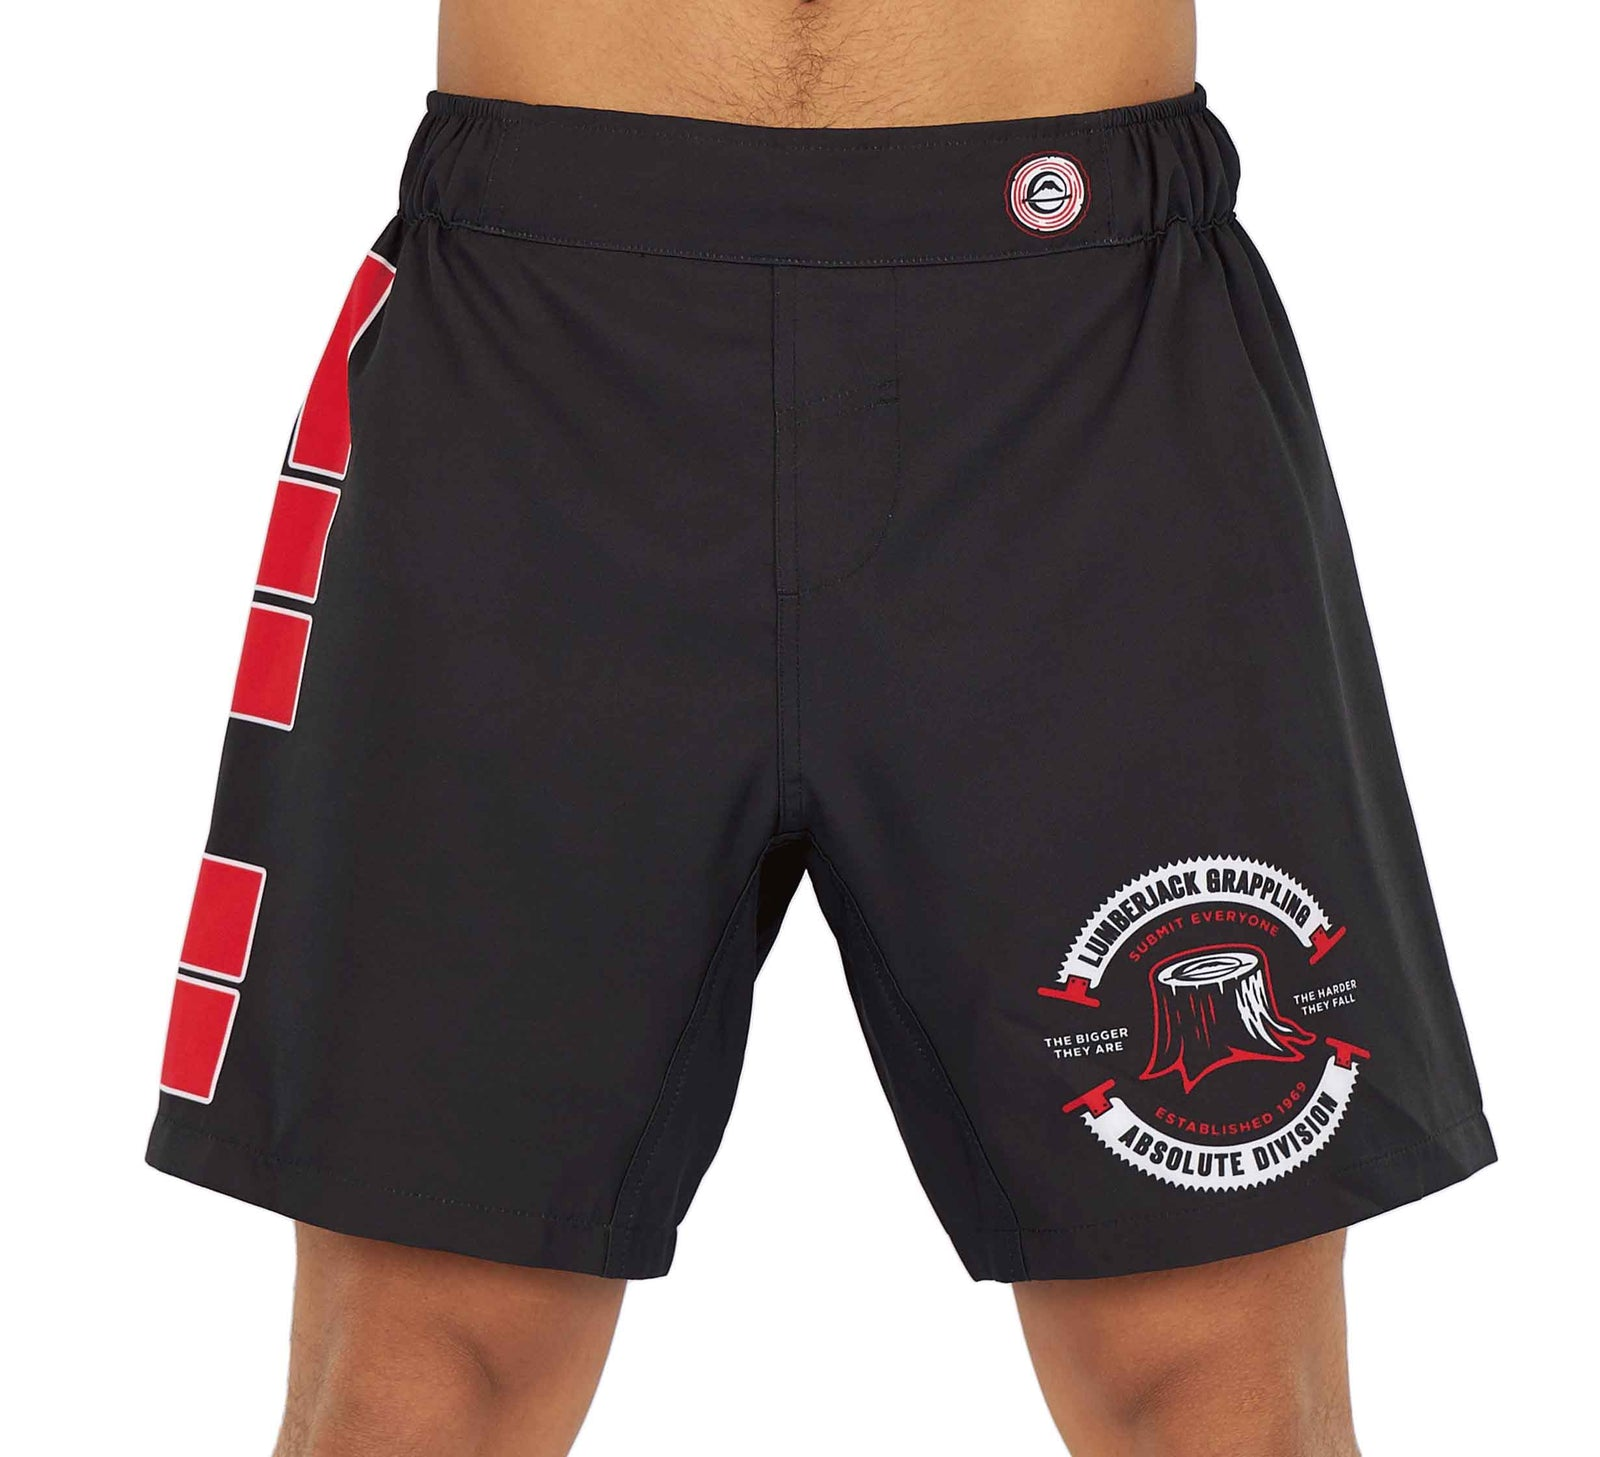 Lumberjack Match Shorts